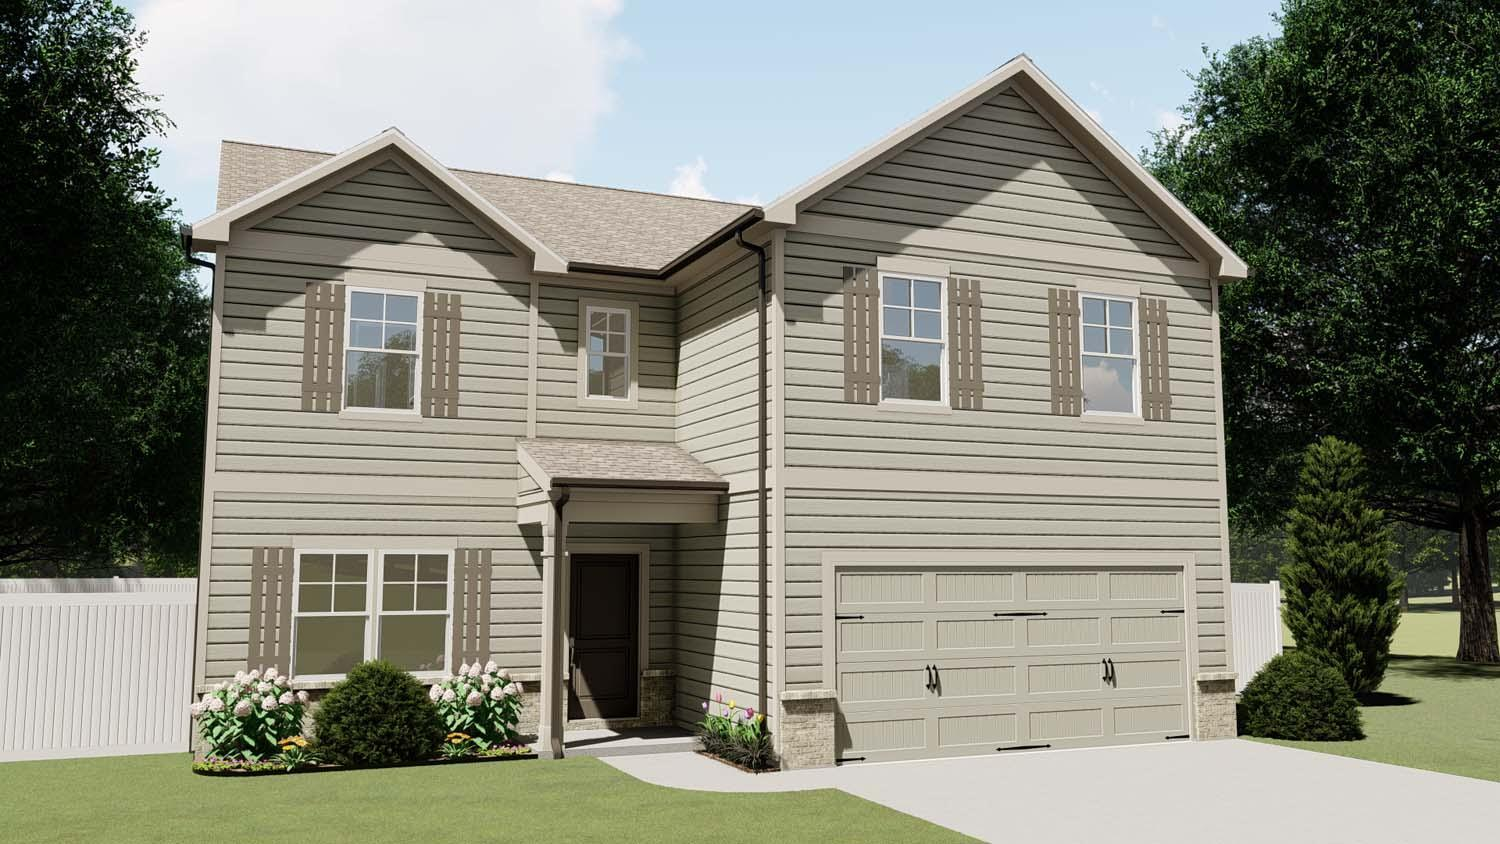 The Kirkwood by Chafin Communities